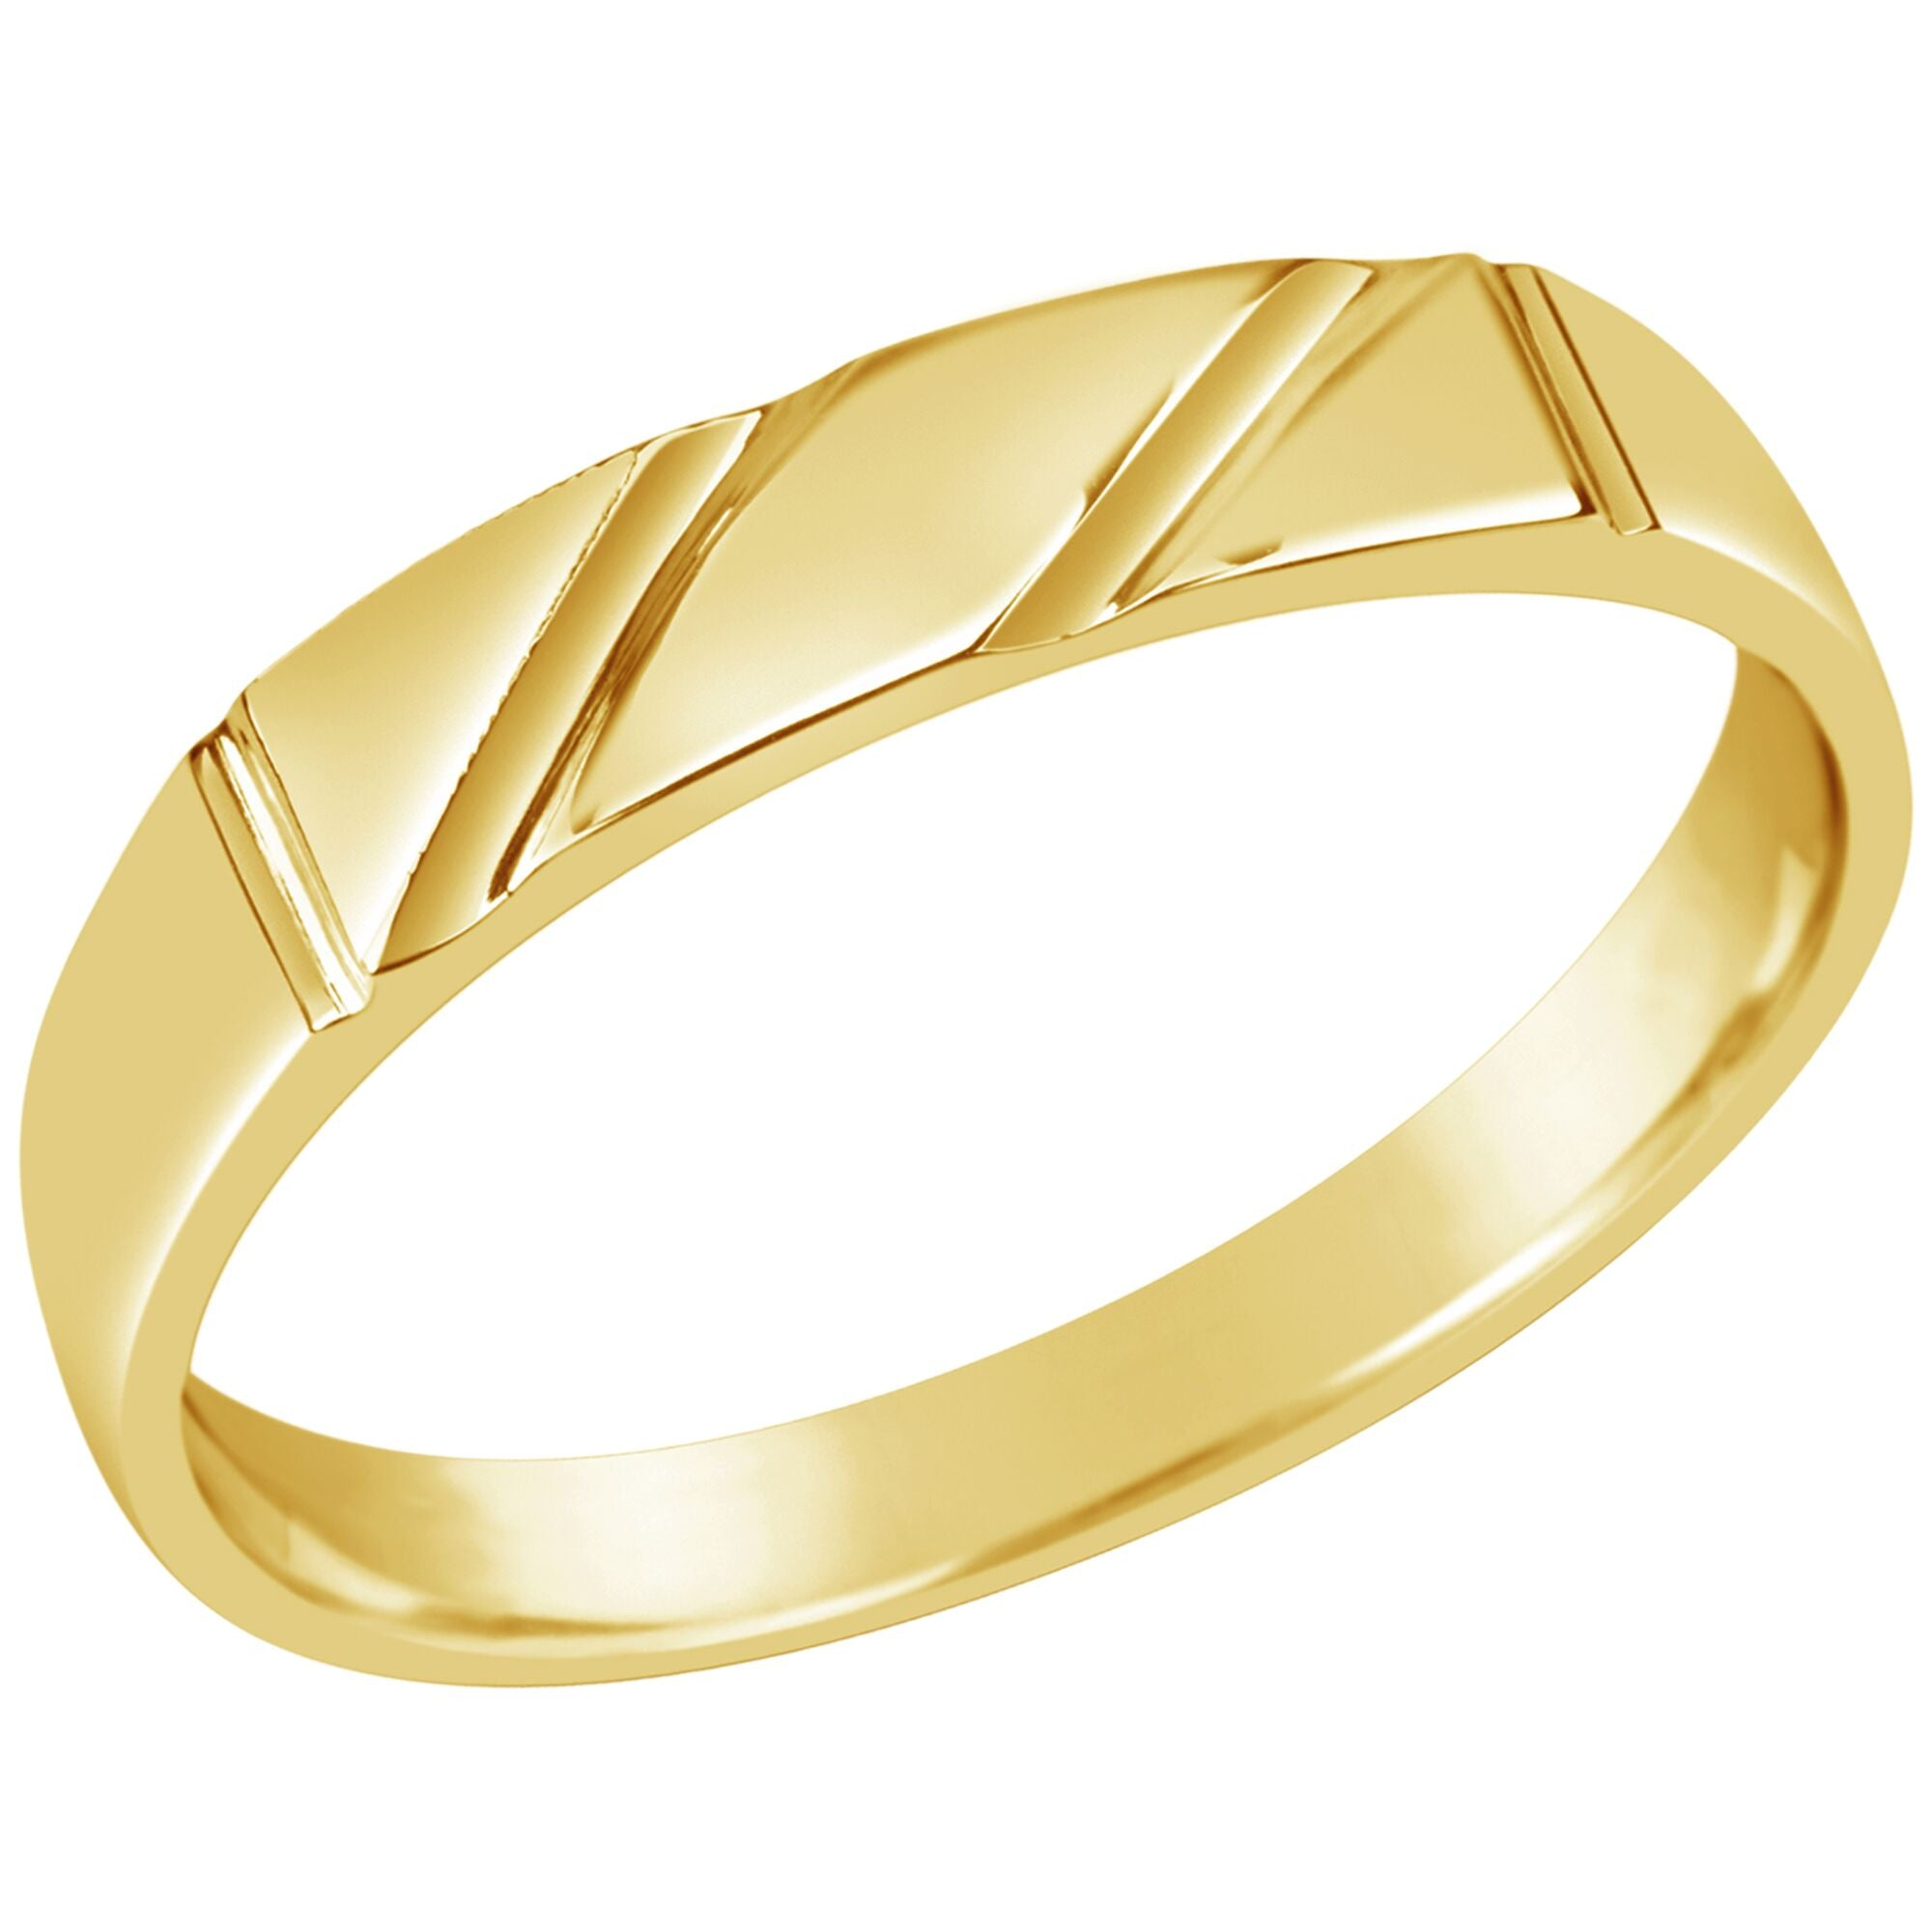 808553fa382ff Gents 9K Yellow Gold Dress Ring Q73 Two Lines